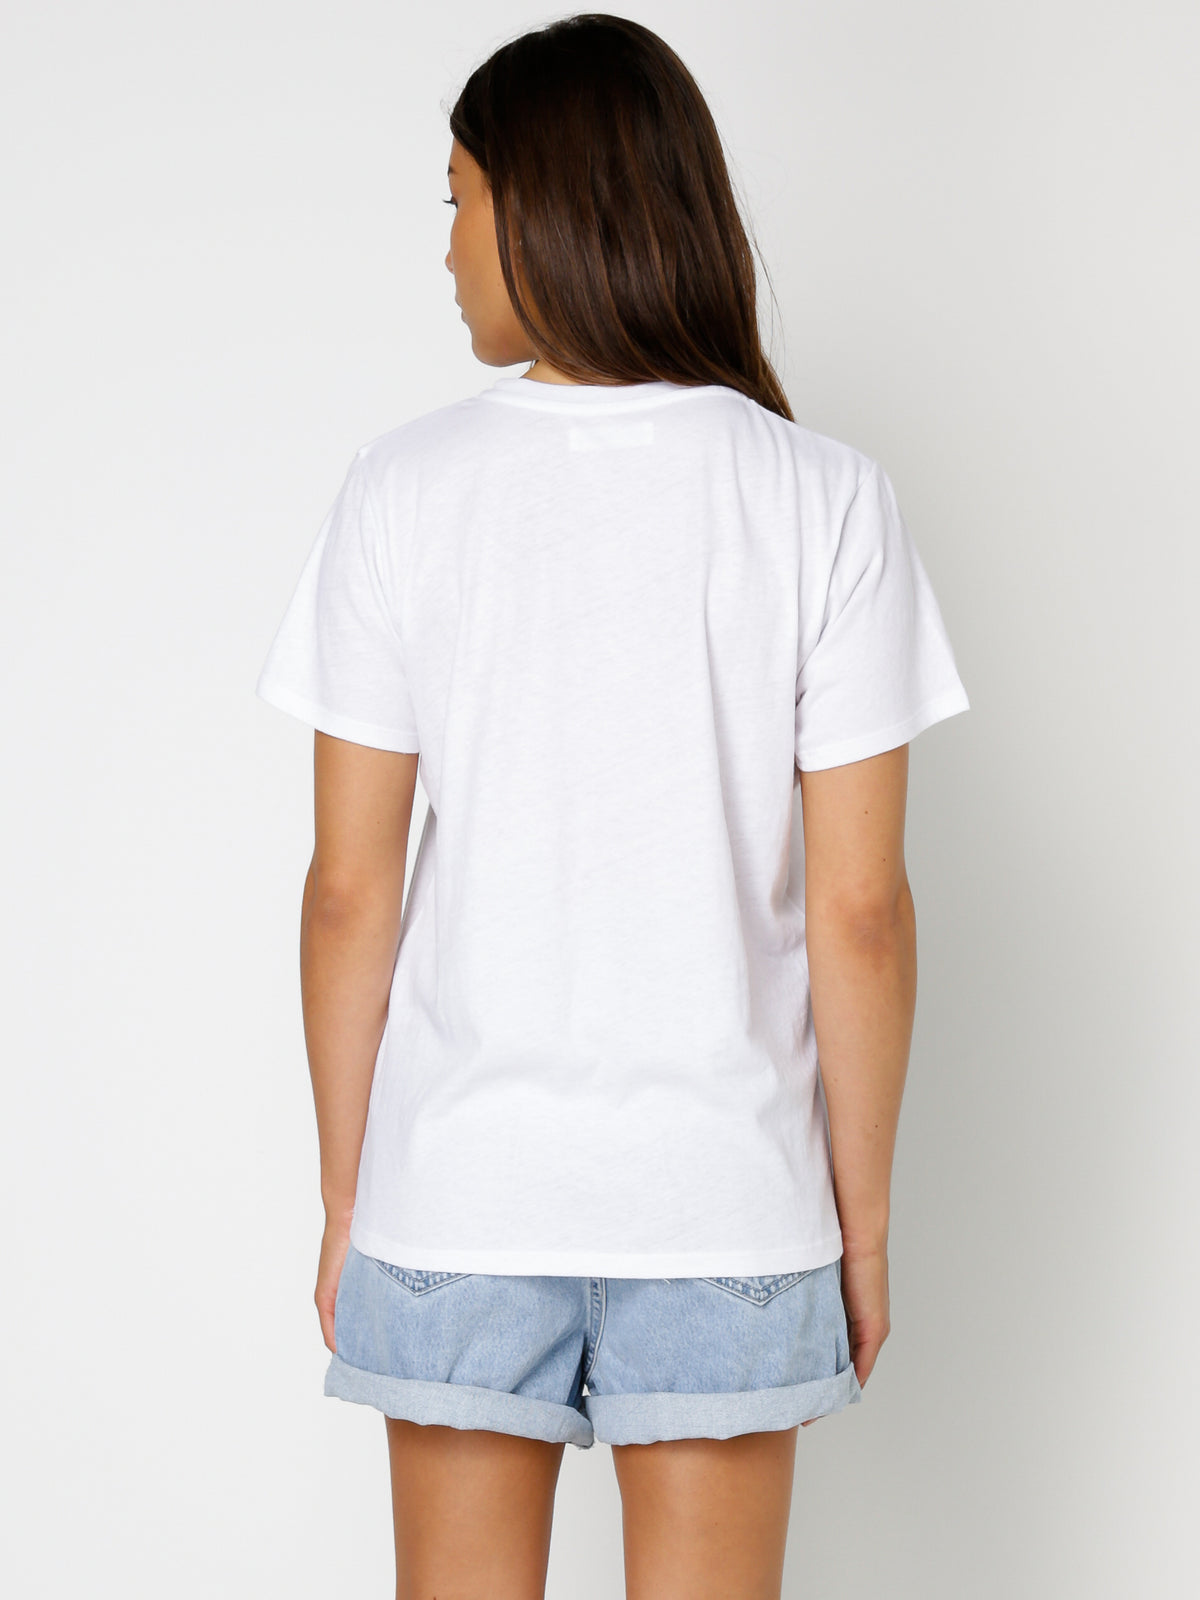 Miles T-Shirt in White